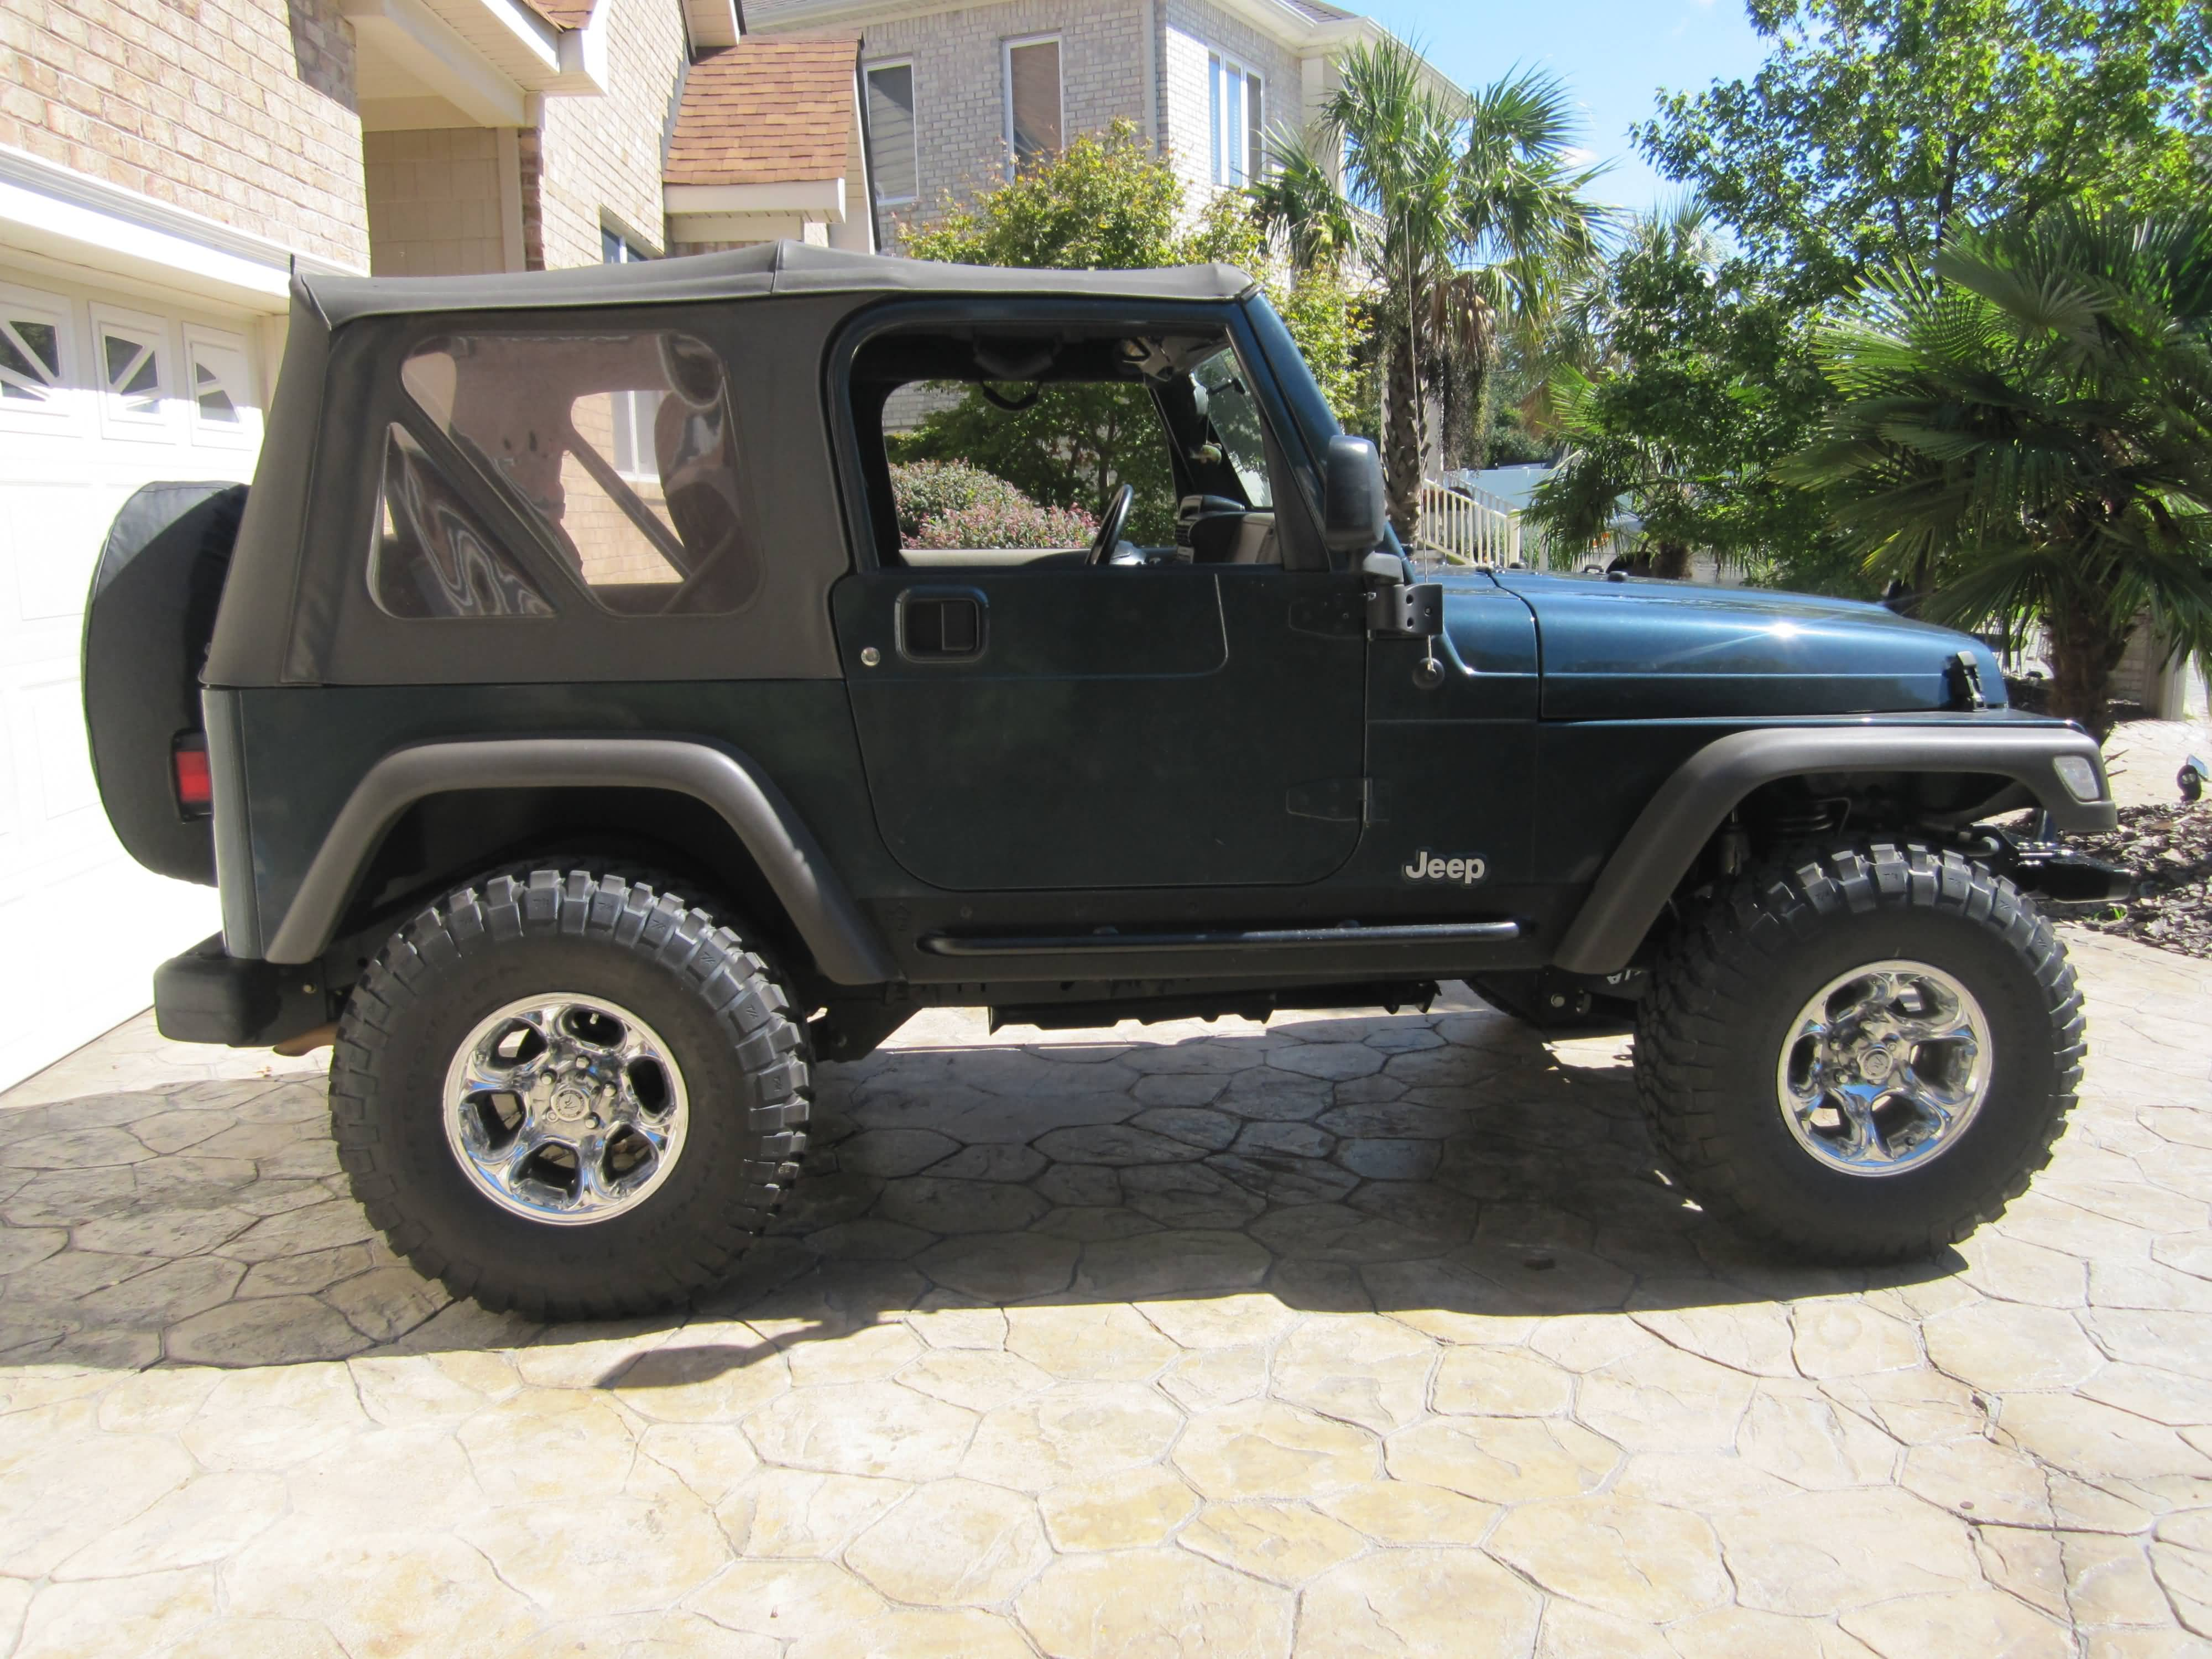 Jeep wrangler tj 4 inch lift stock tires image details